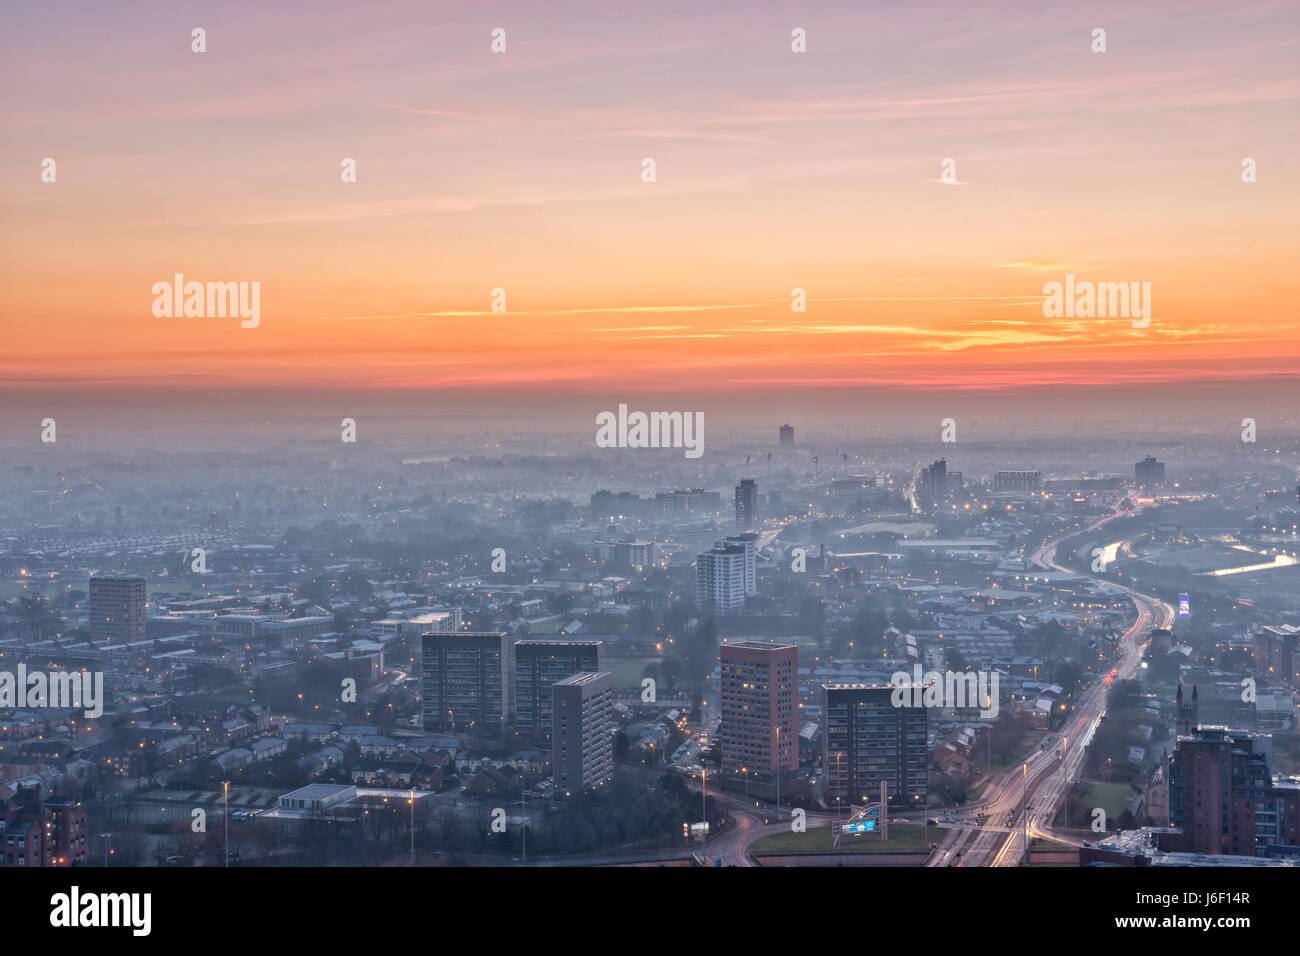 Manchester City centre sunset - Stock Image